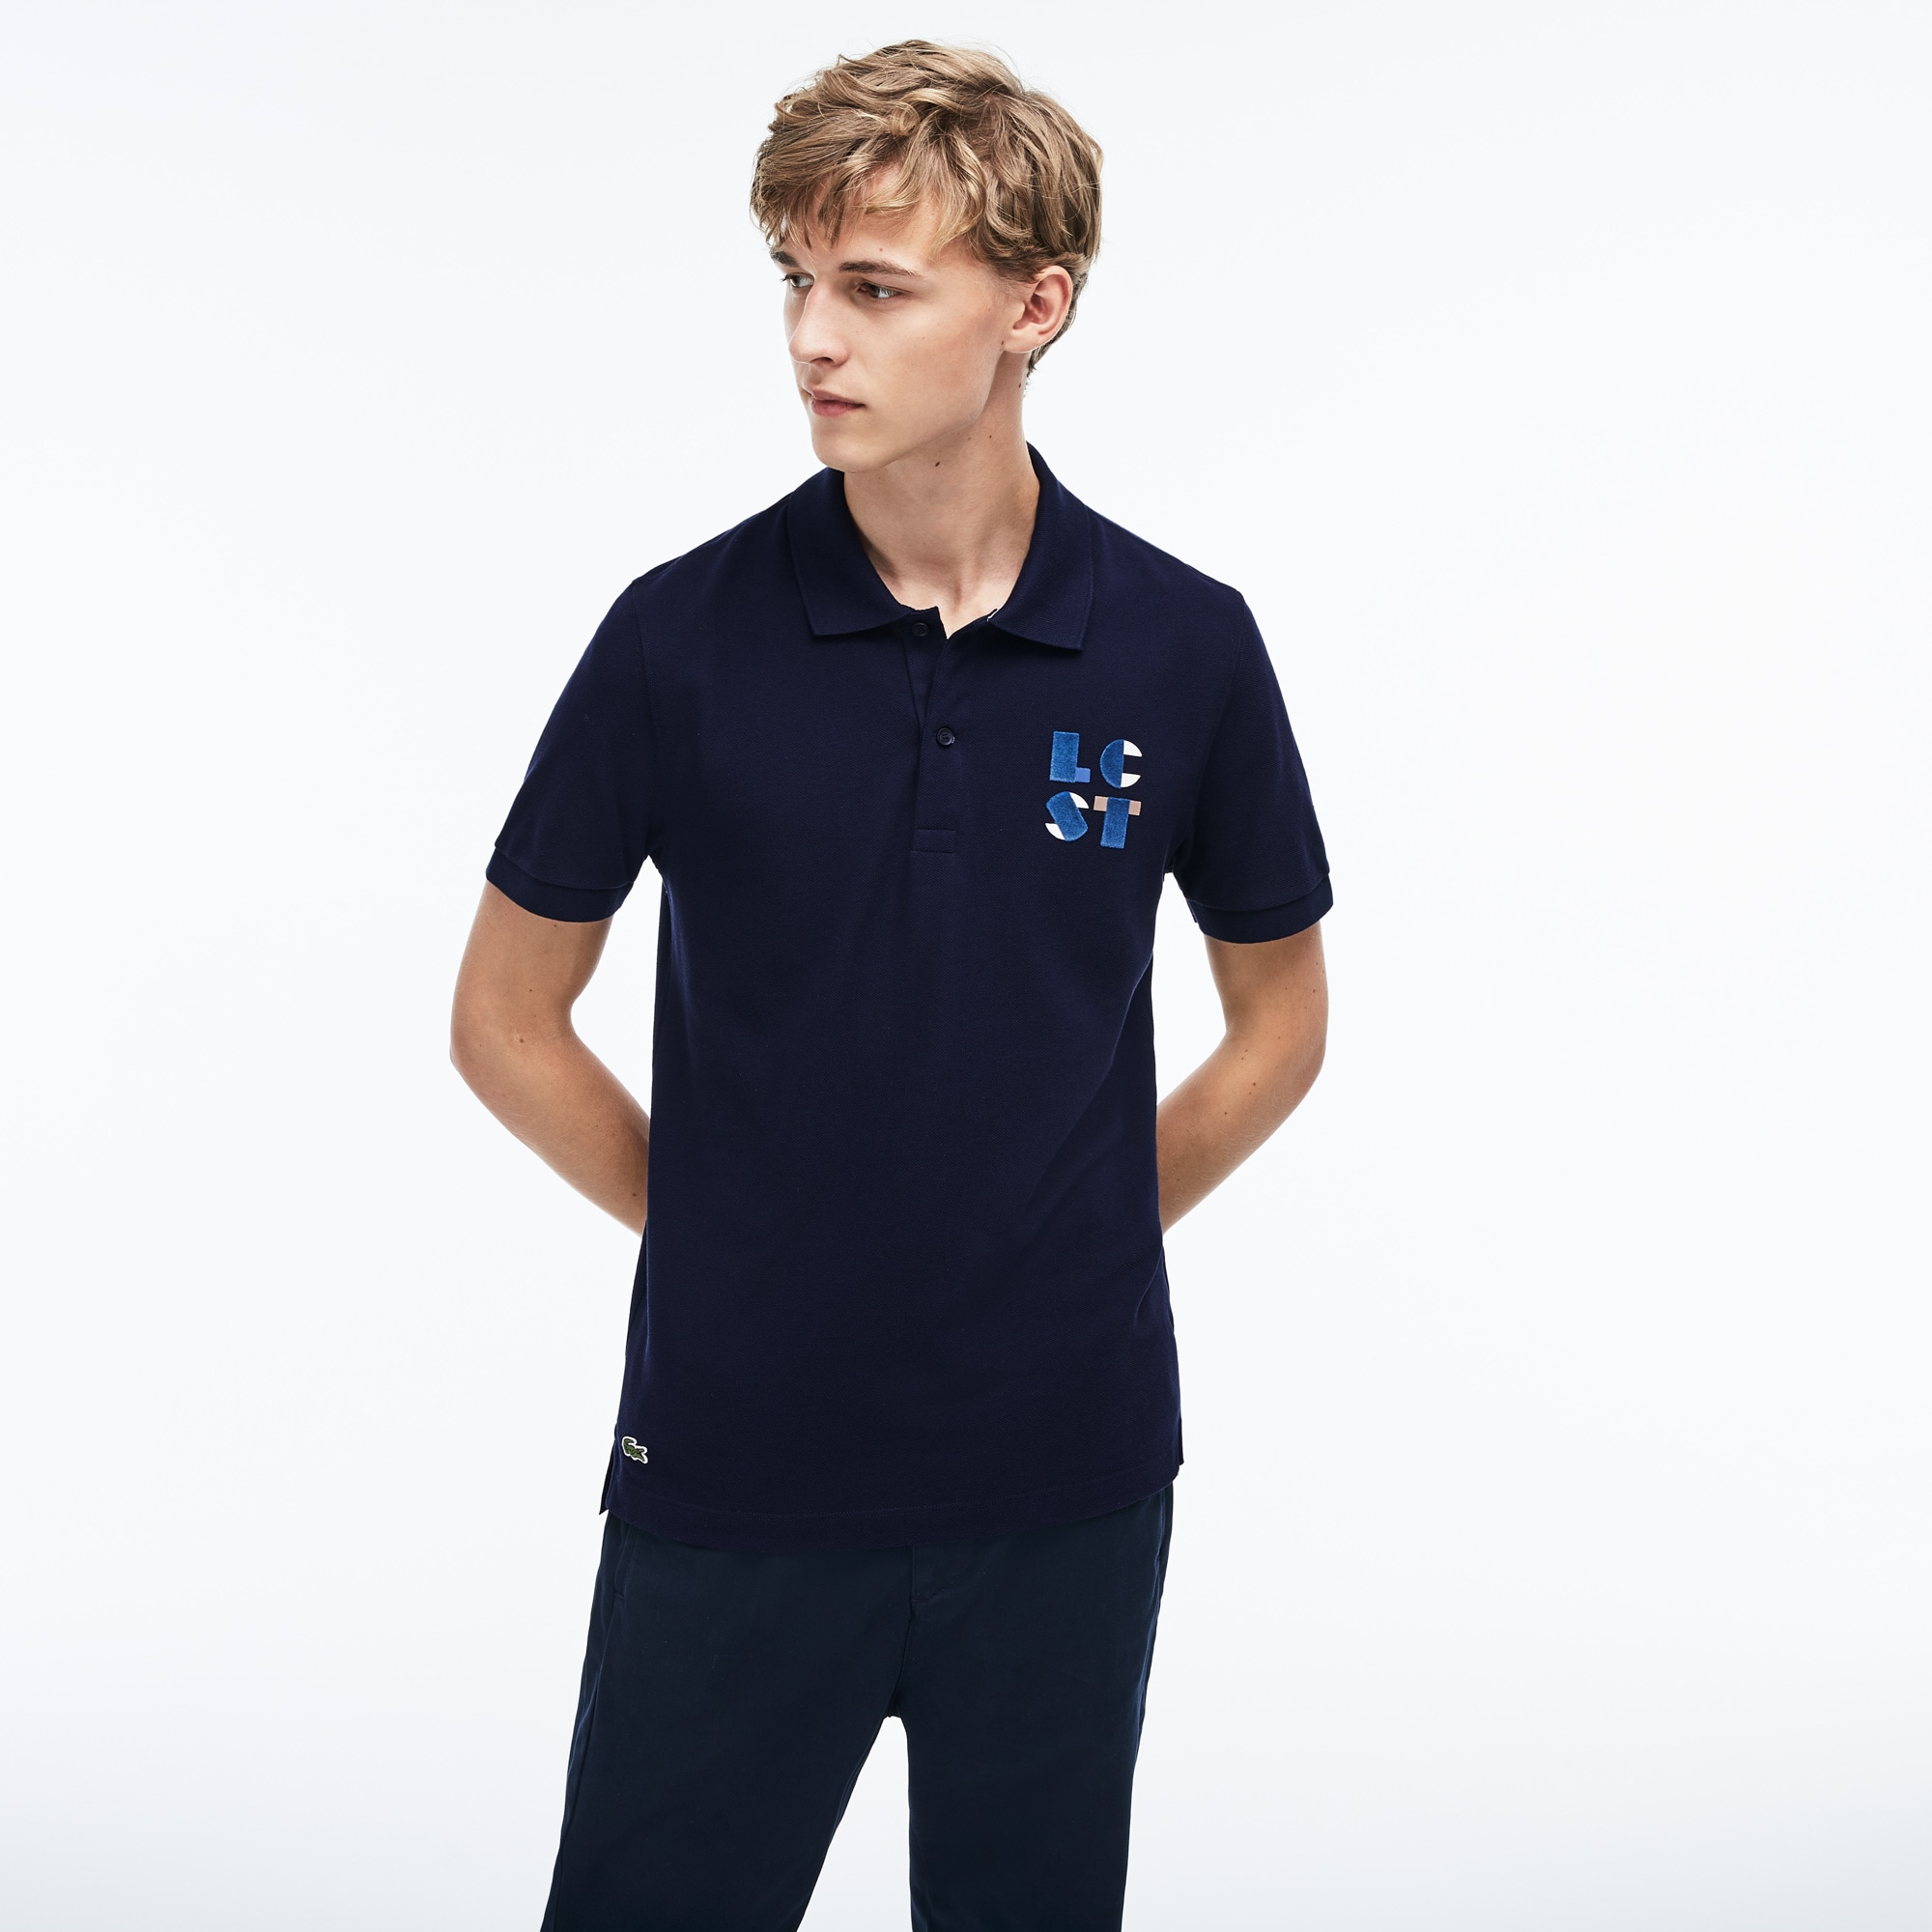 Men's Lacoste Regular Fit LCST Lettering Petit Piqué Polo Shirt